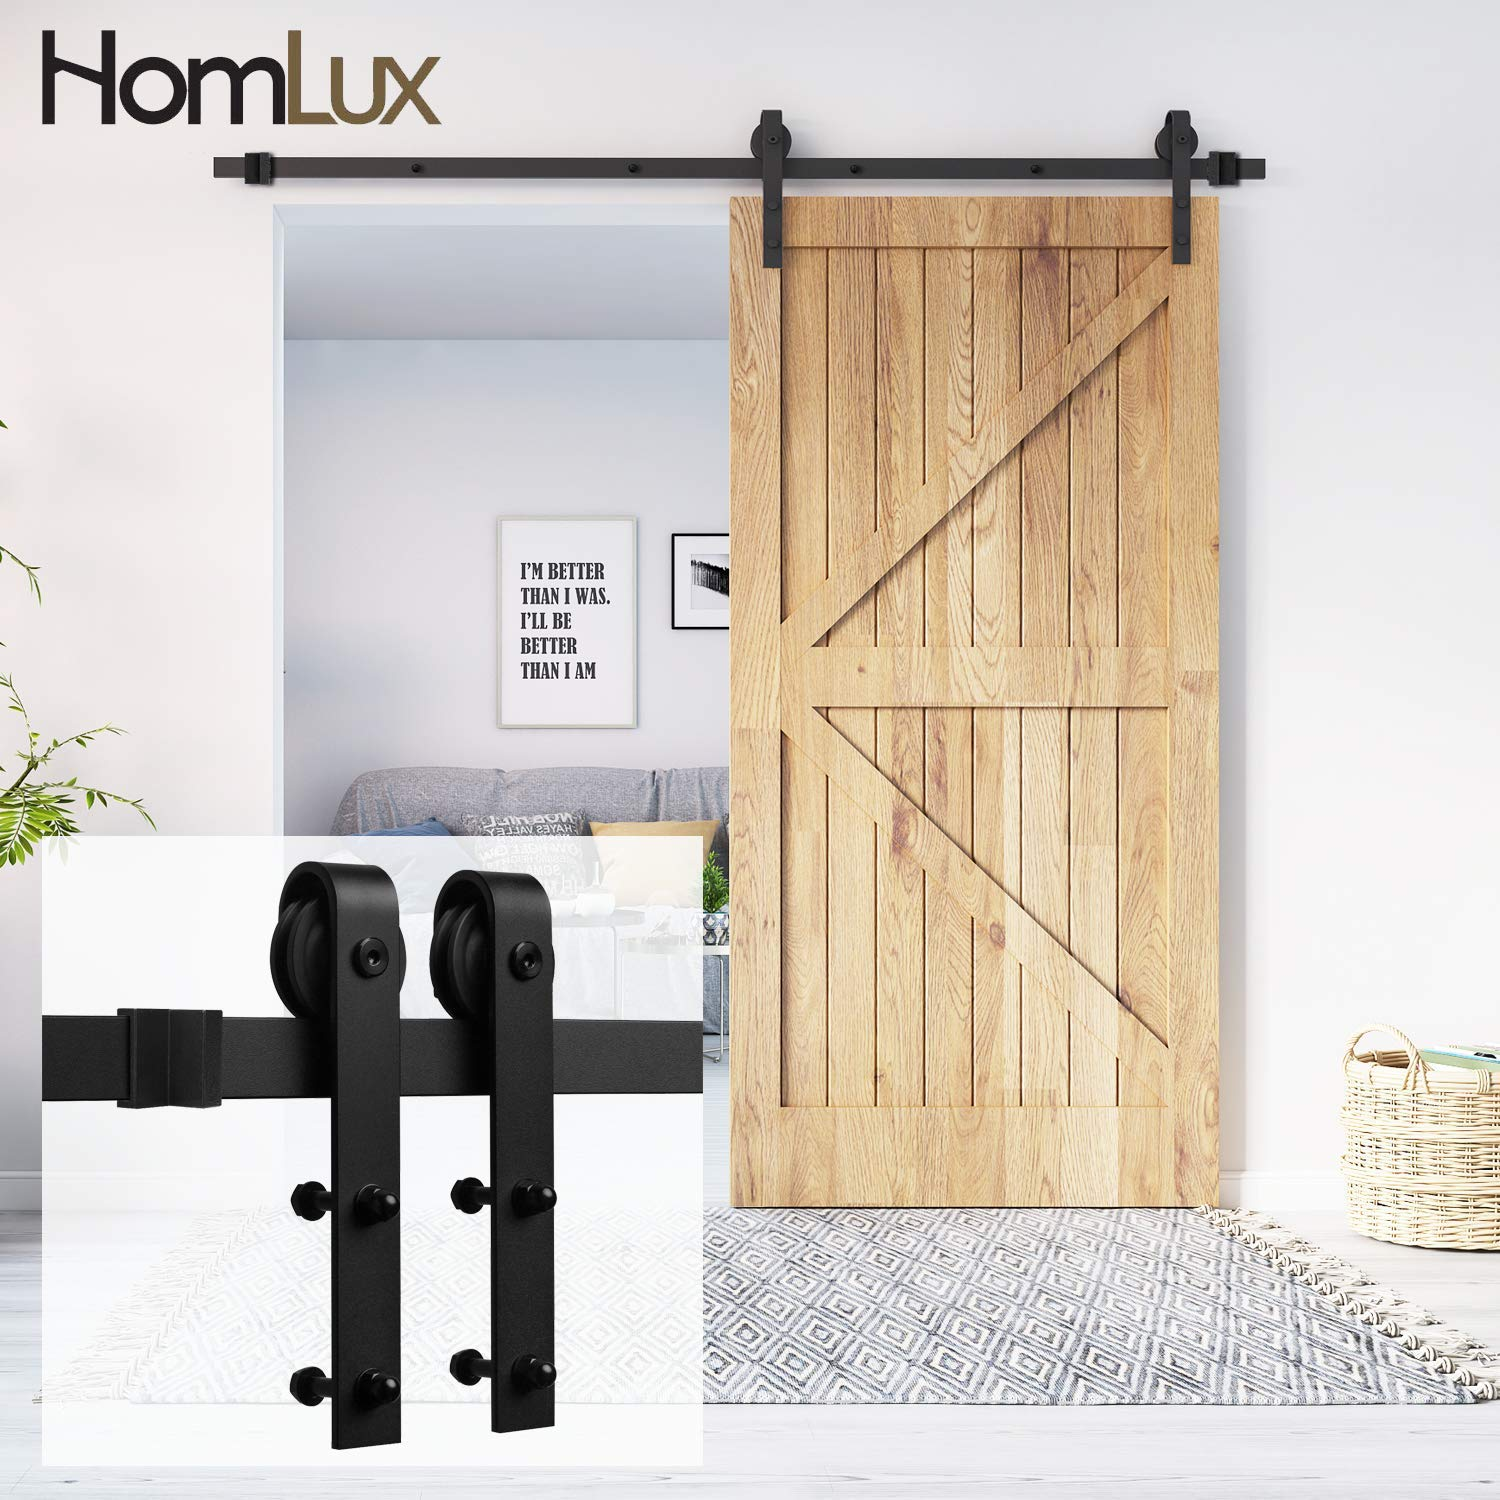 Homlux 8ft Heavy Duty Sturdy Sliding Barn Door Hardware Kit One Door - Smoothly and Quietly - Simple and Easy to Install - Fit 1 3/8-1 3/4'' Thickness Door Panel(Black)(J Shape Hangers) ...